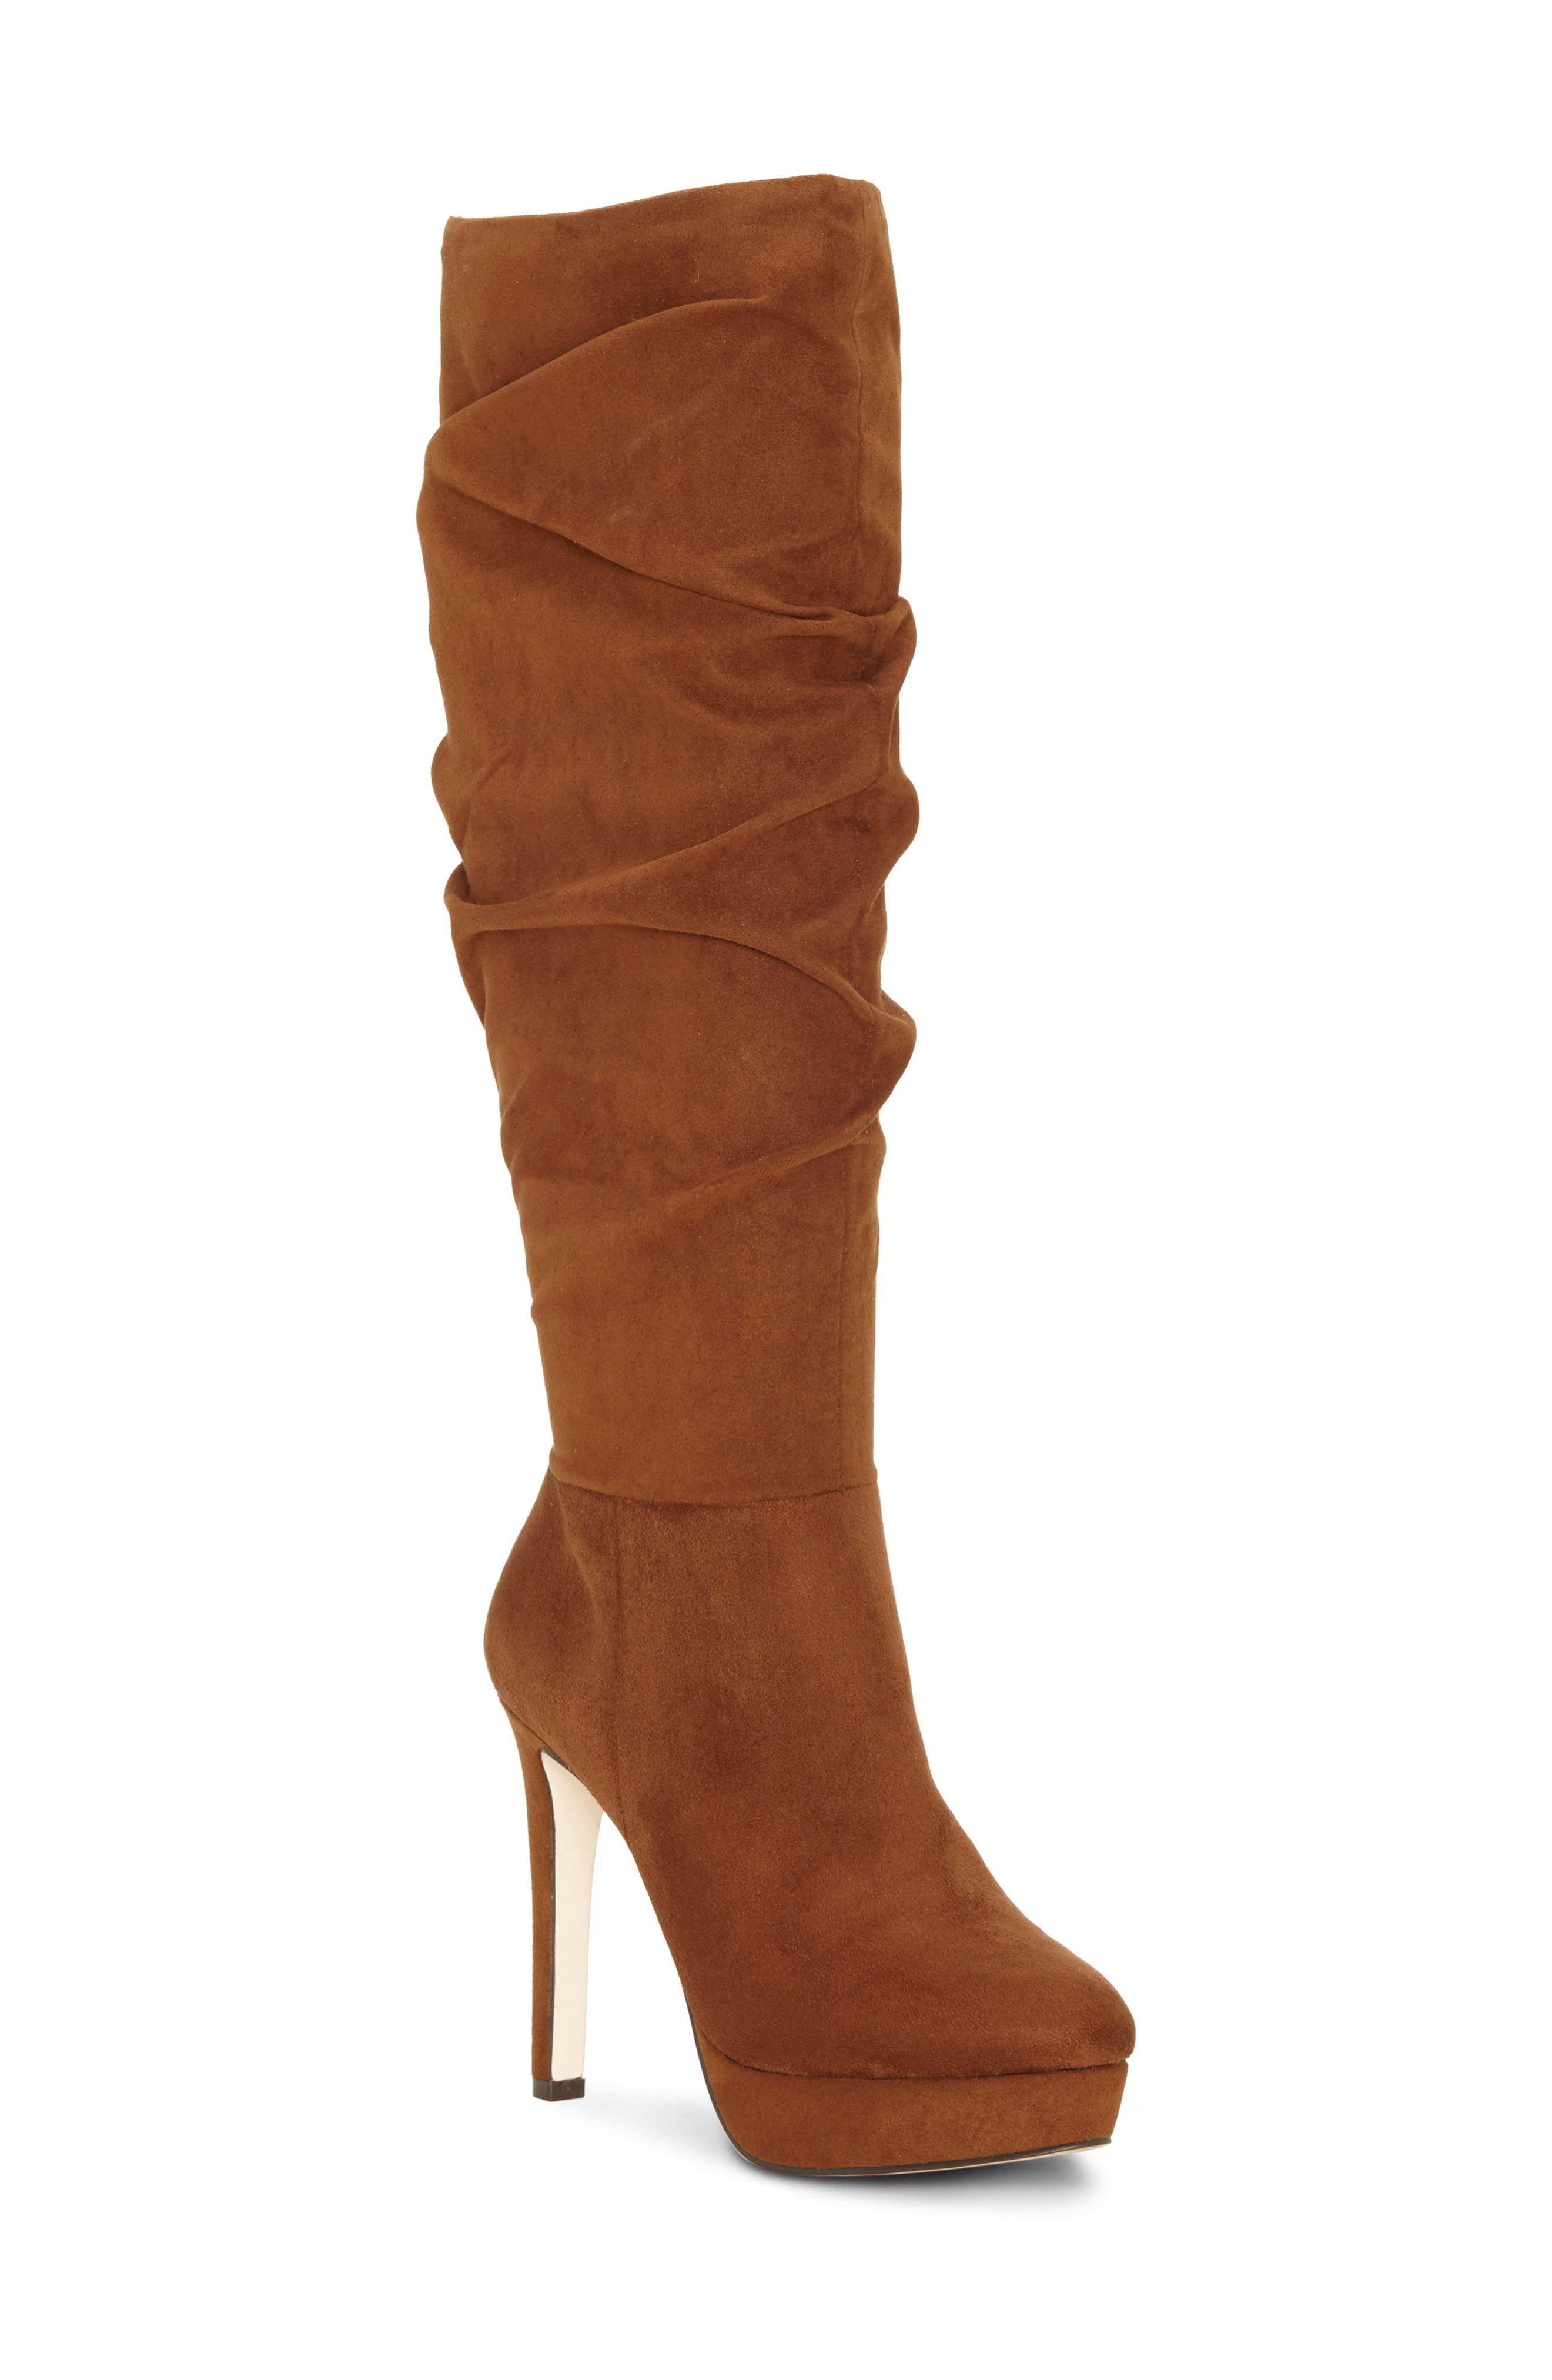 Jessica Simpson Rhysa Knee High Boot- Brown